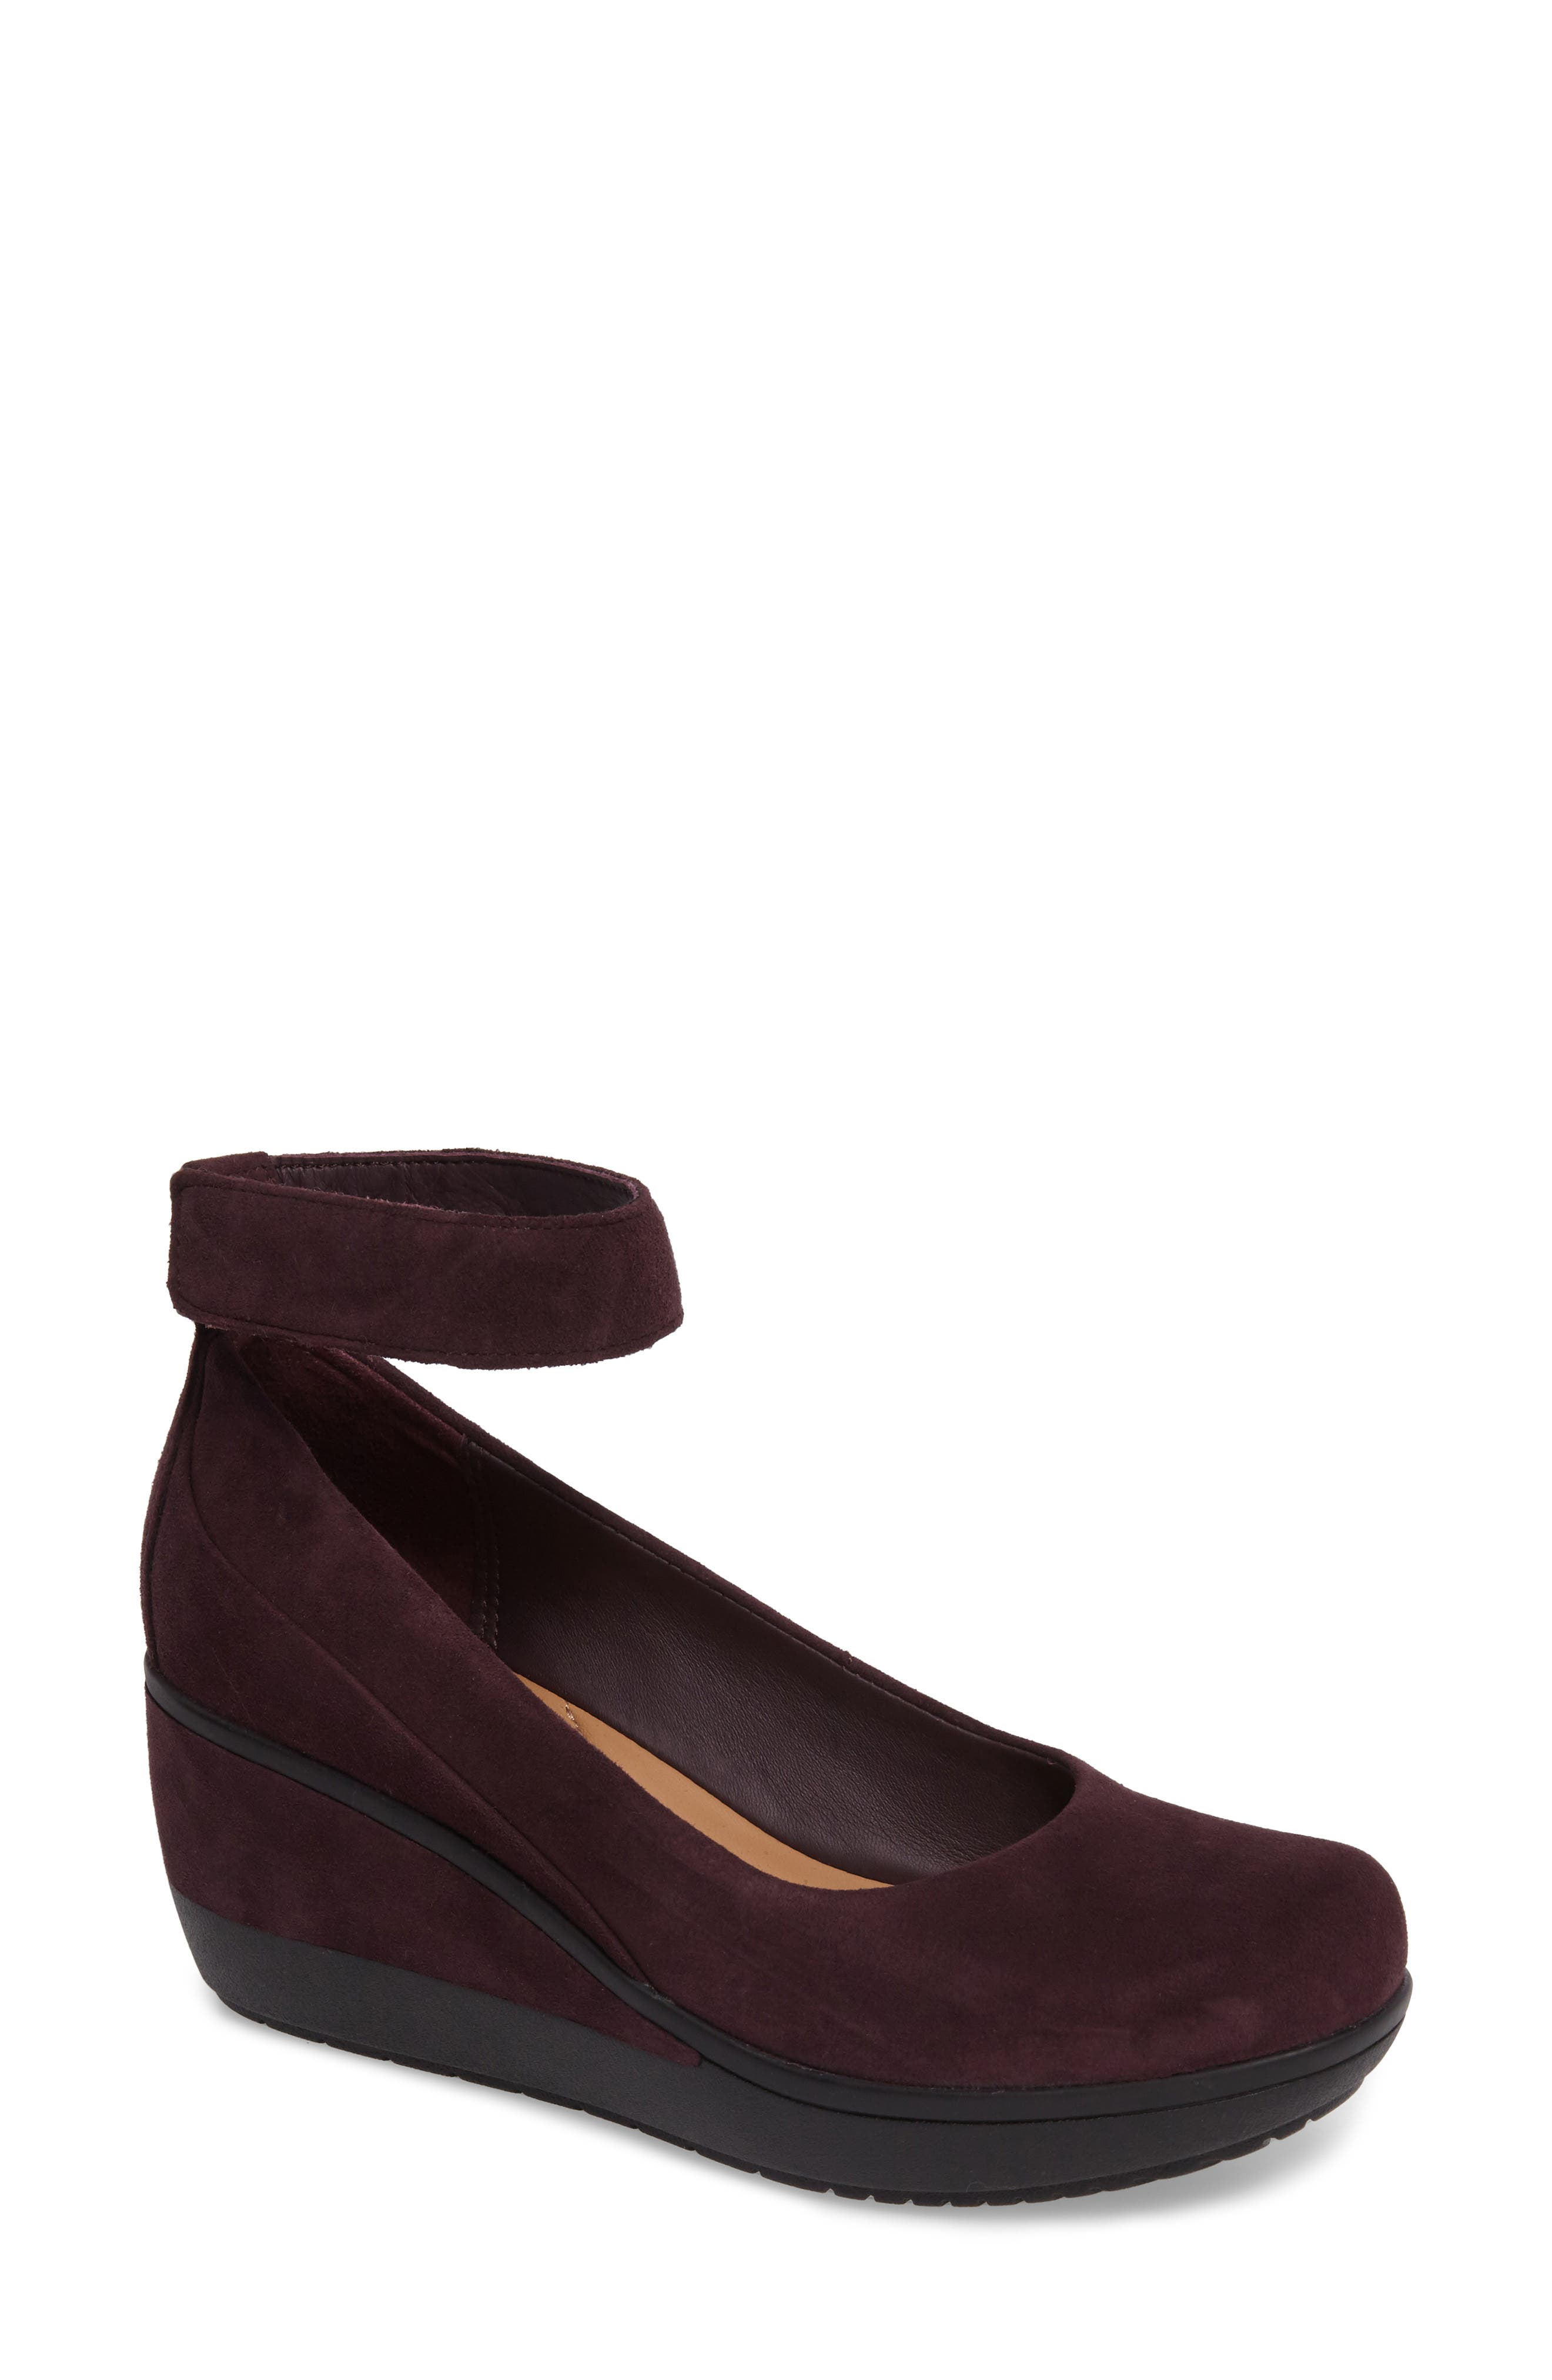 Alternate Image 1 Selected - Clarks® Wynnmere Fox Ankle Strap Pump (Women)